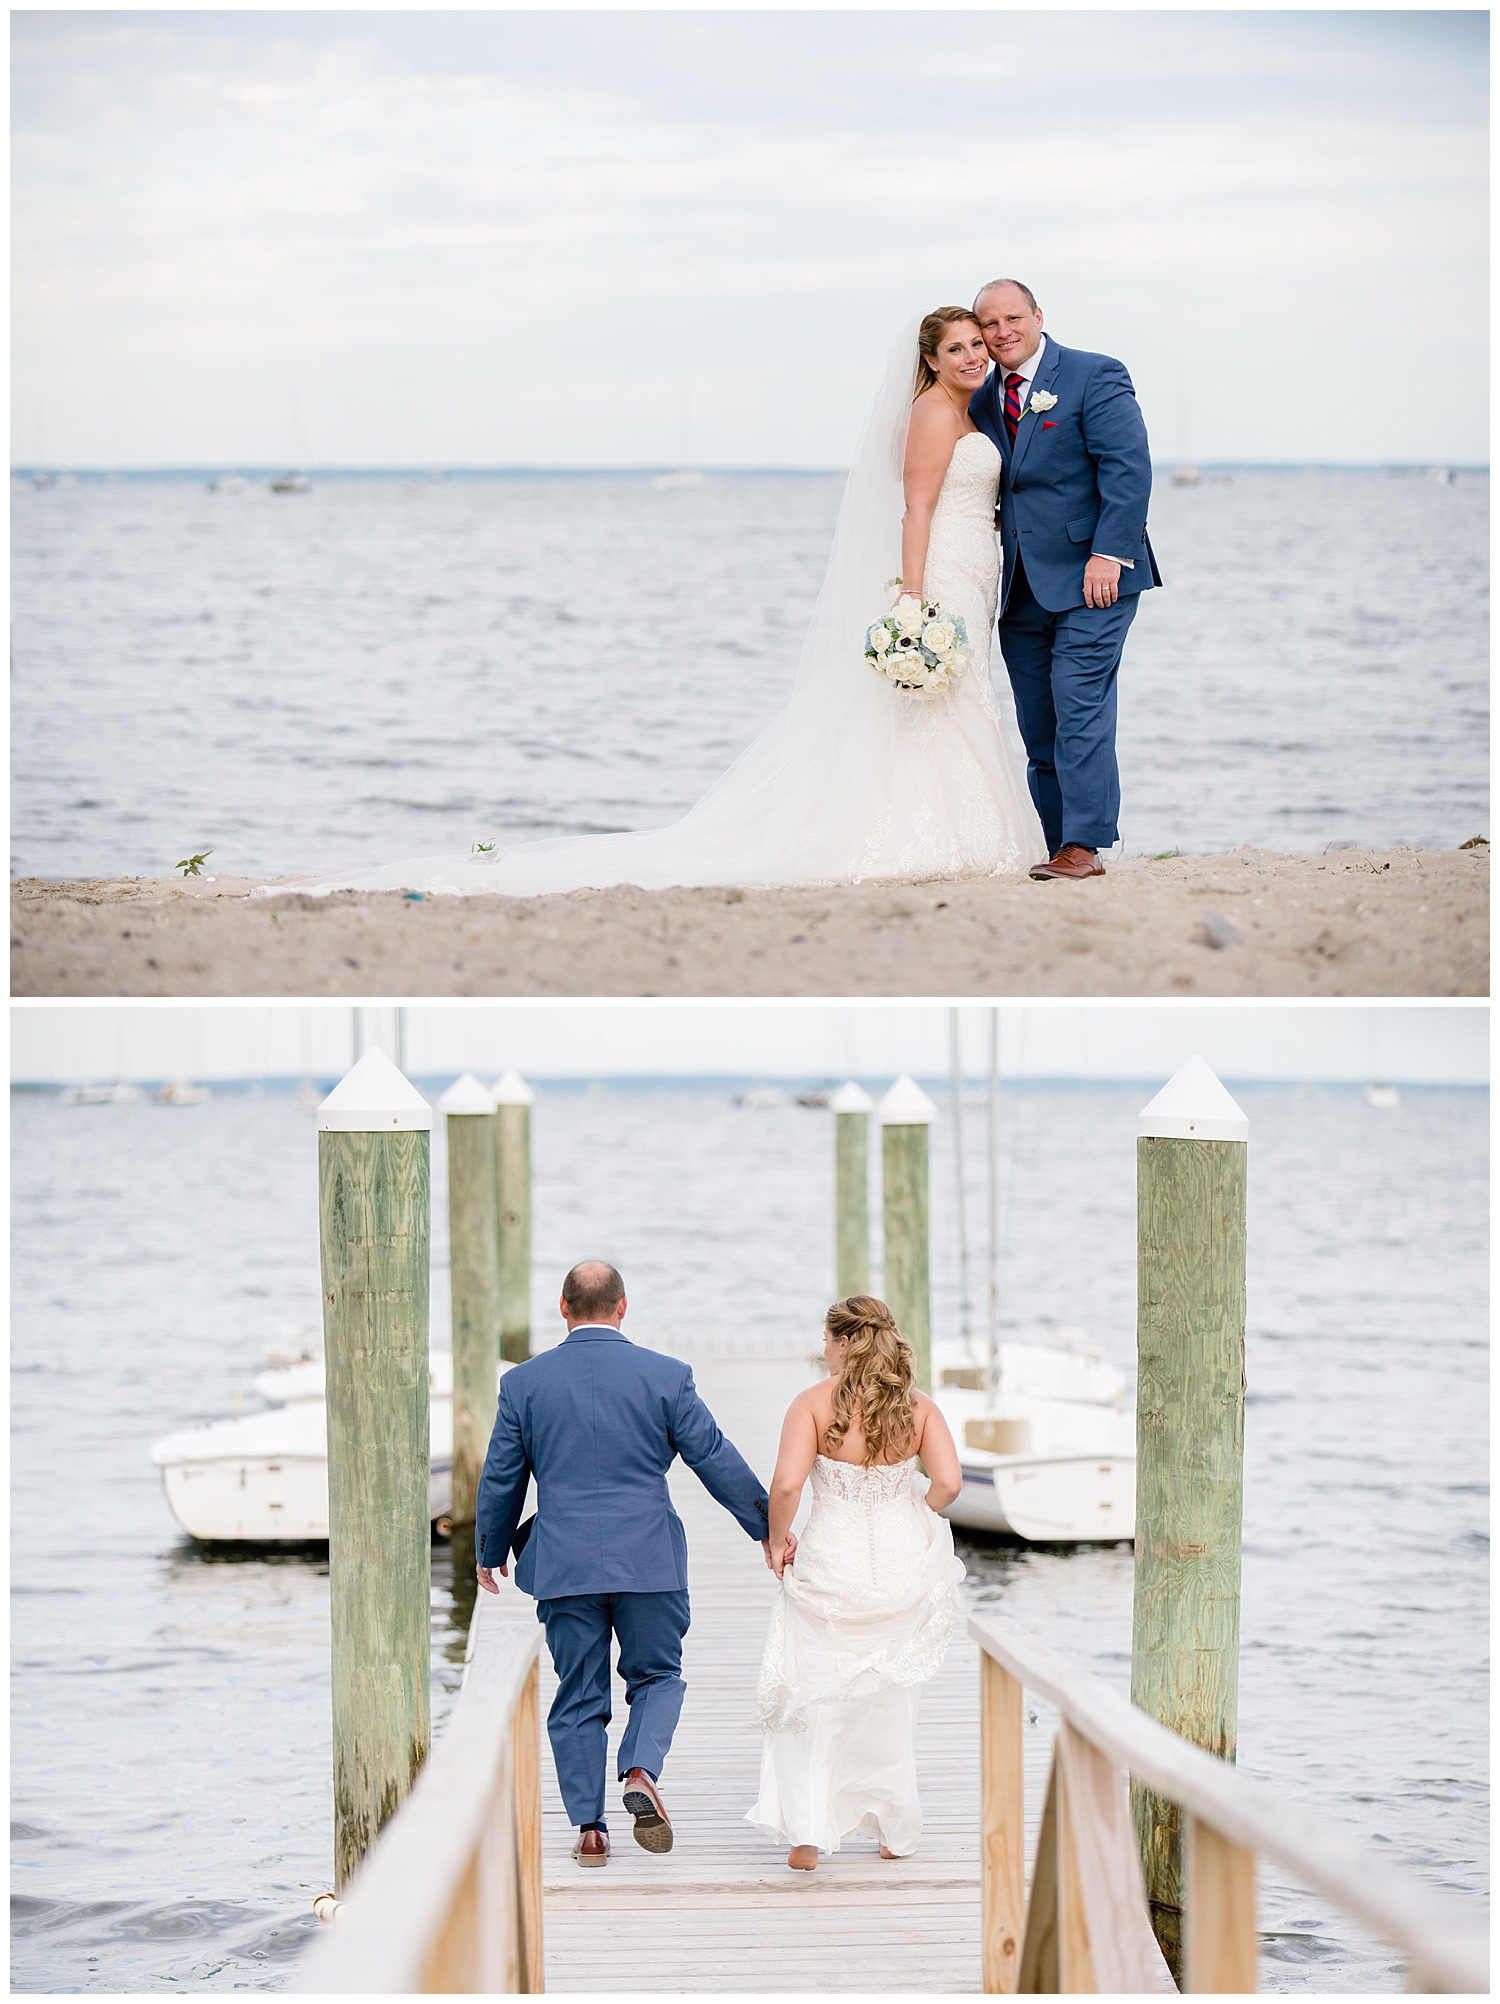 Shining-tides-wedding-photos